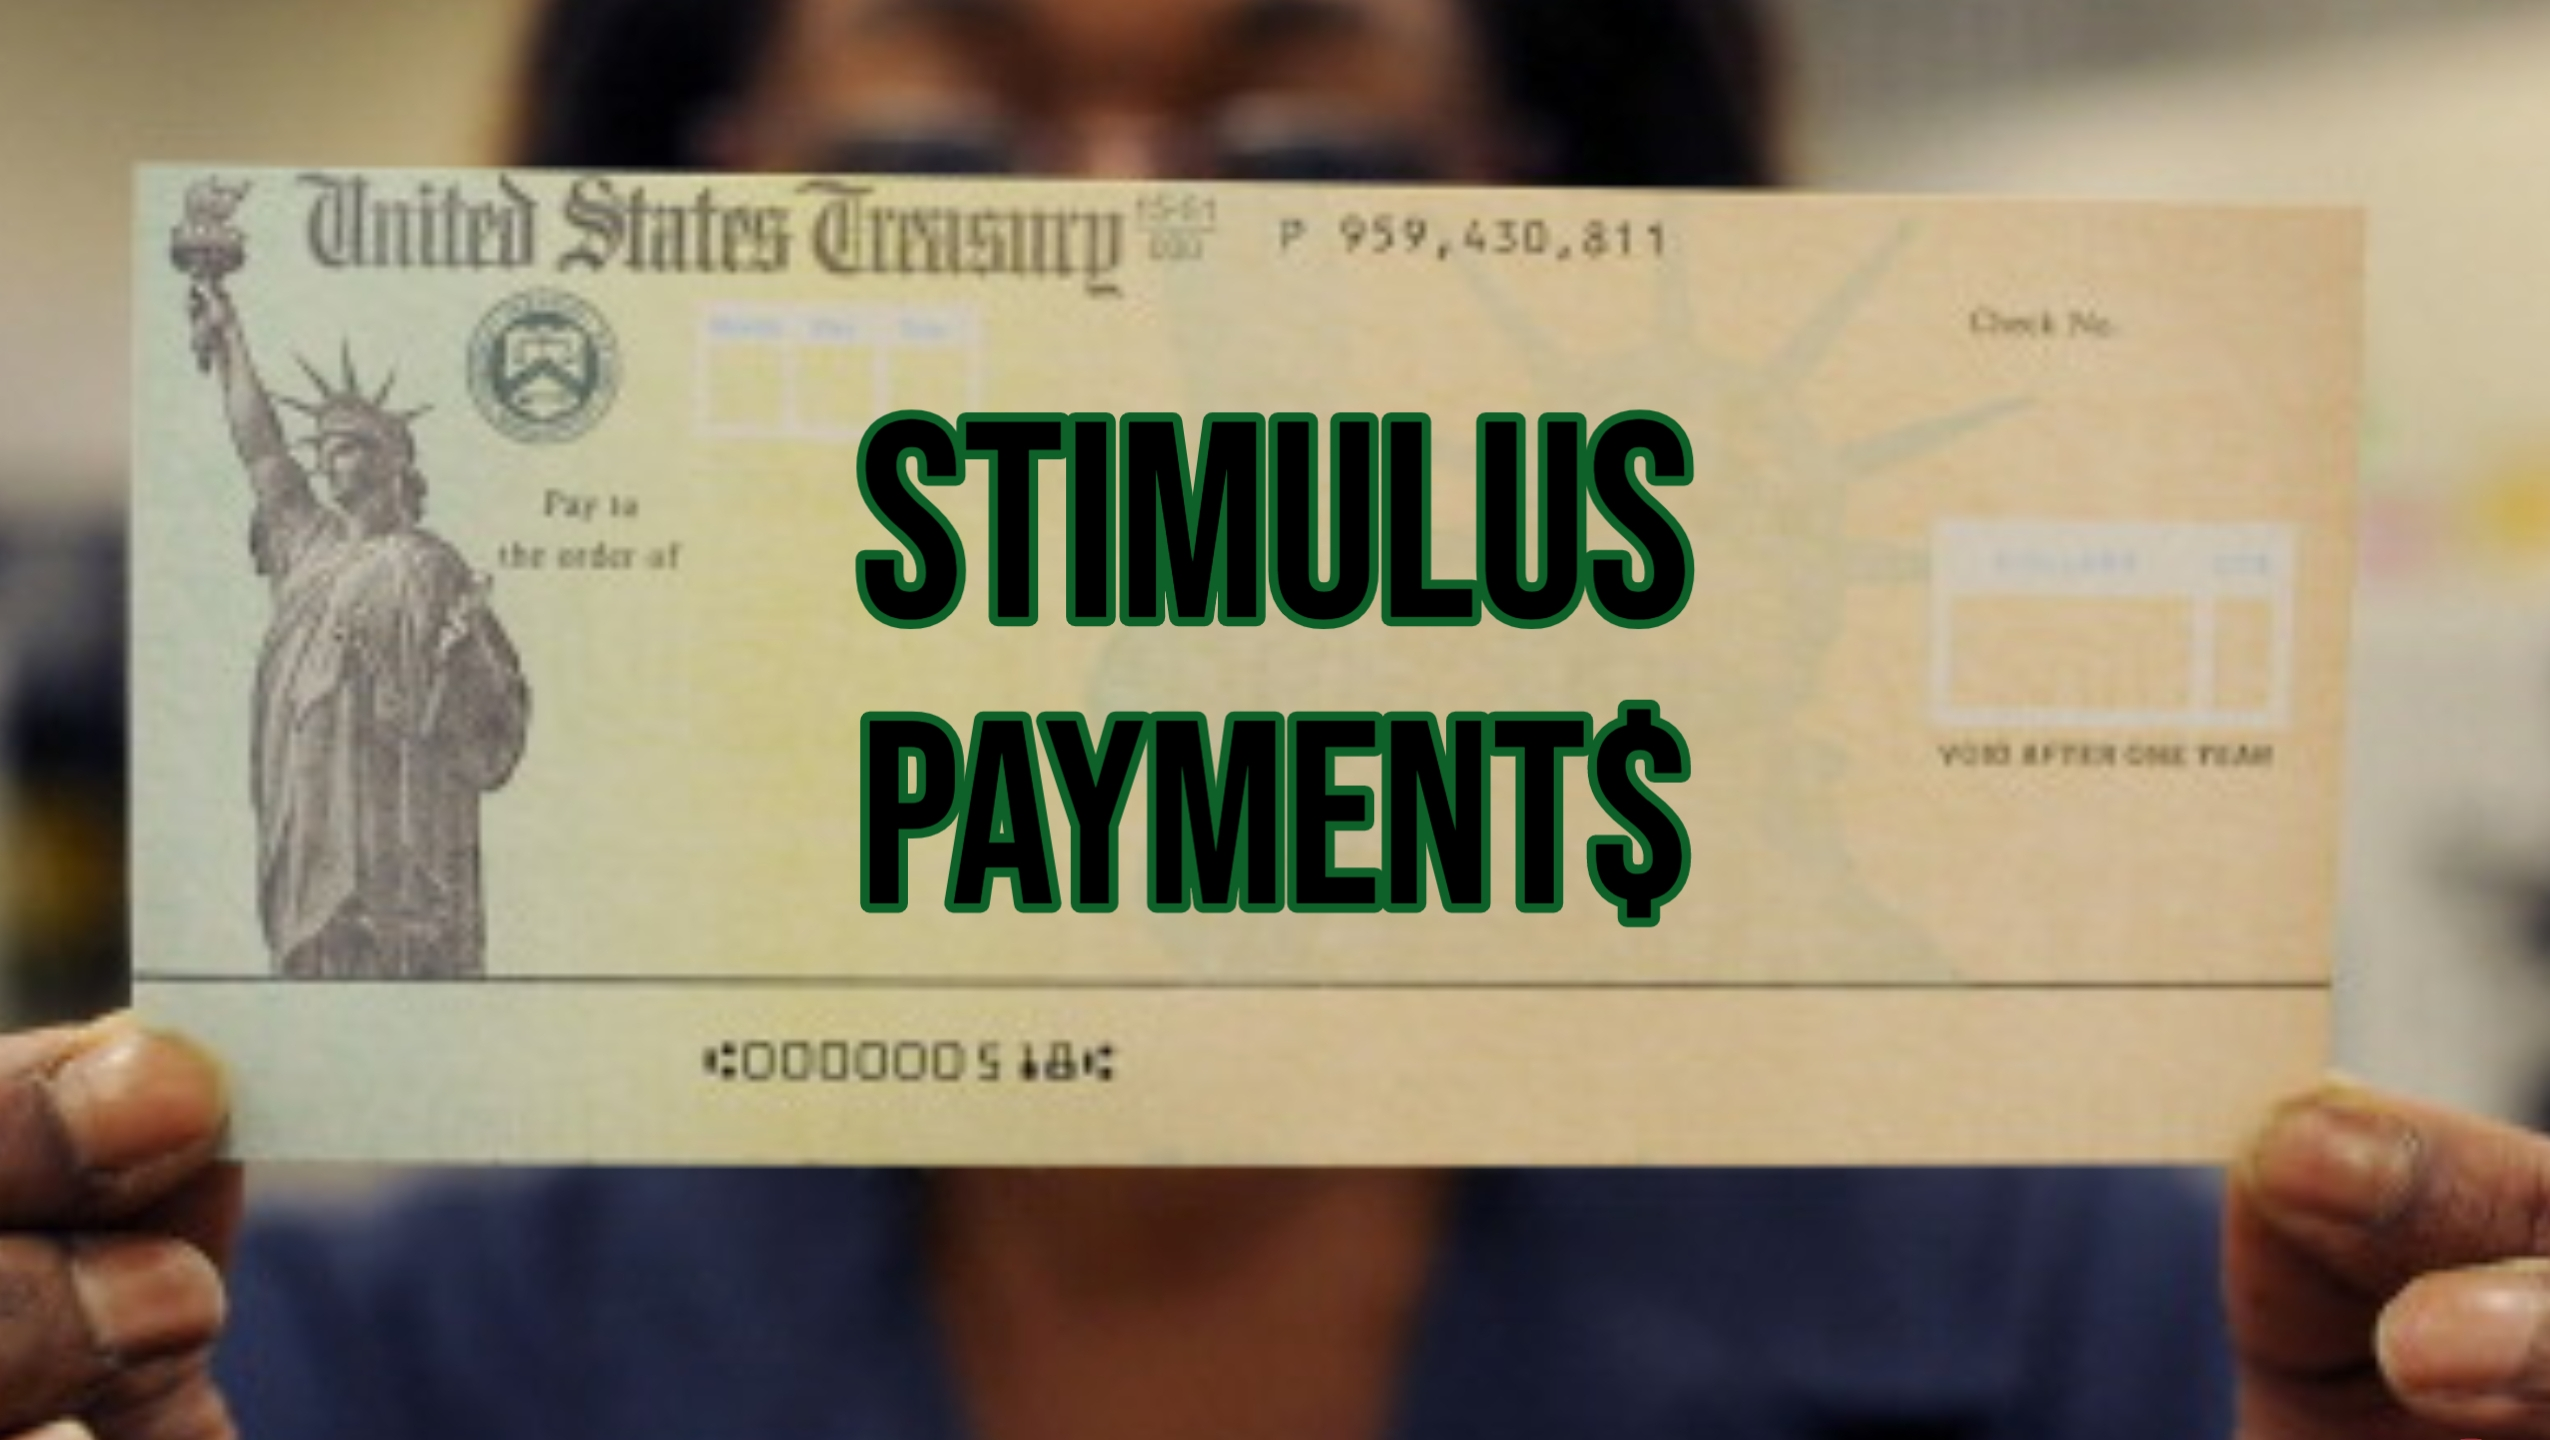 For some, stimulus money could already be on a card ...